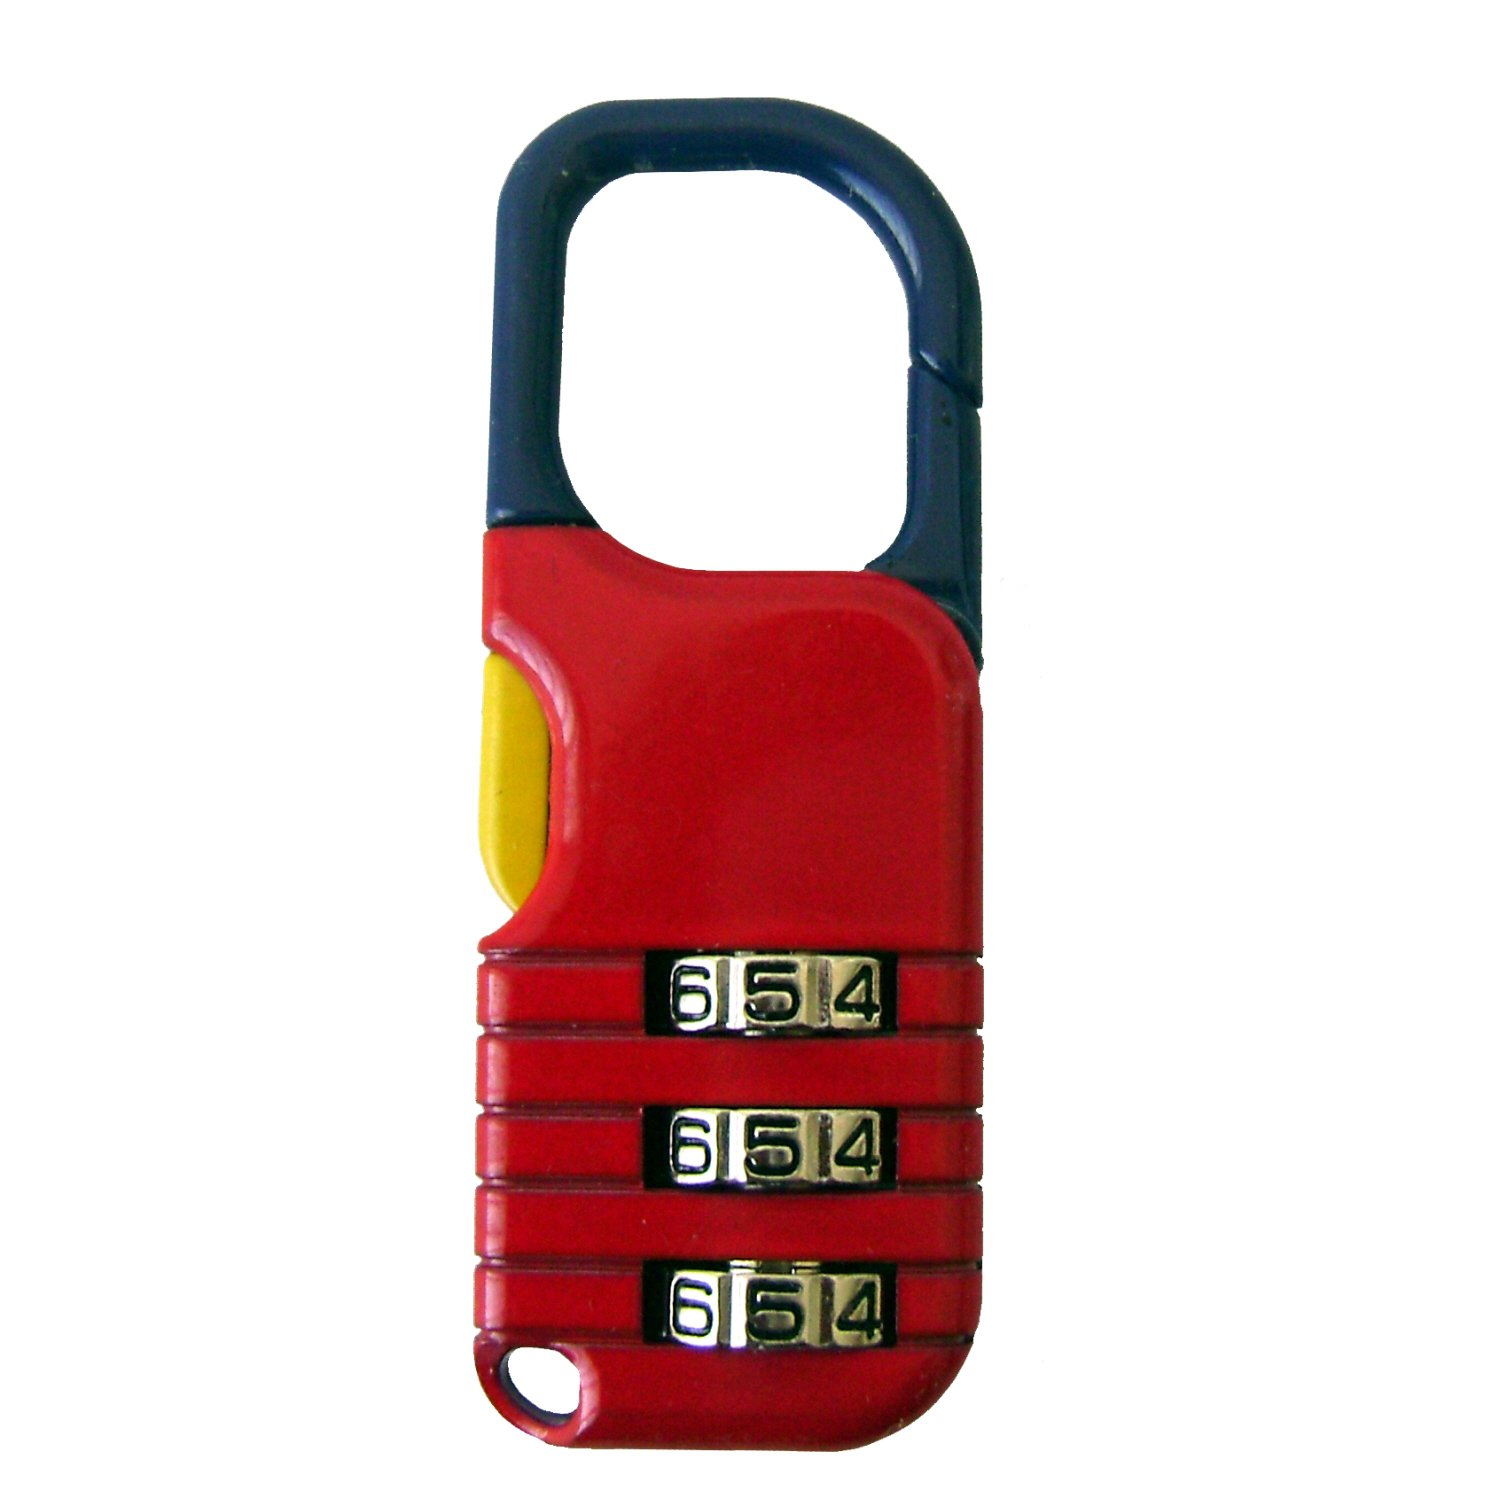 Red Pack of 2 The Club UTL851D Backpack Lock